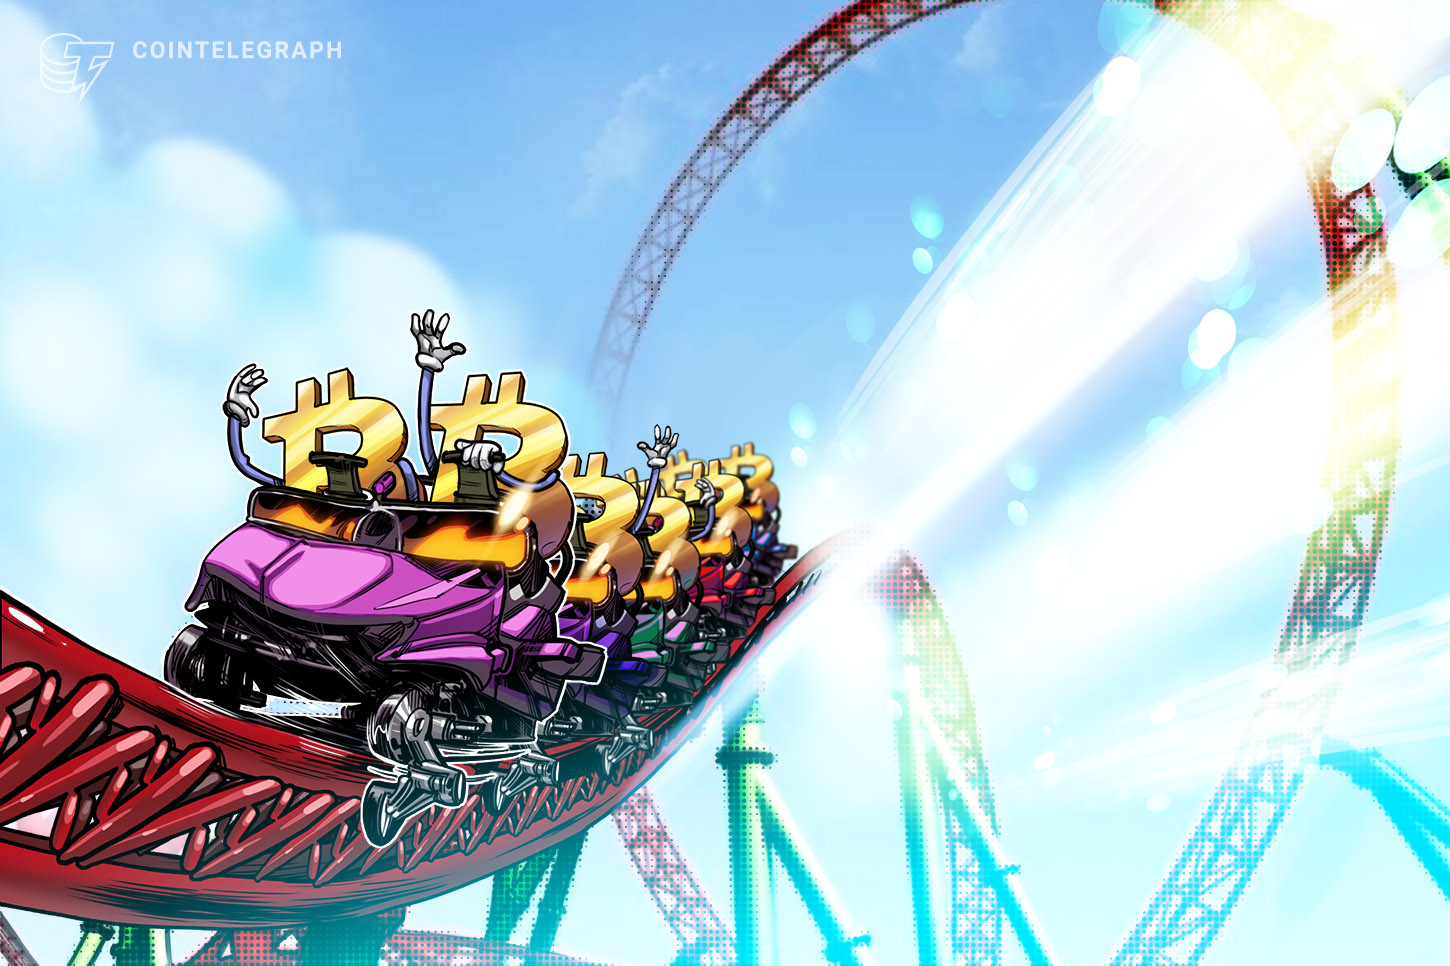 Bitcoin price could hit $29K next, warns CNBC 'Chartmaster'